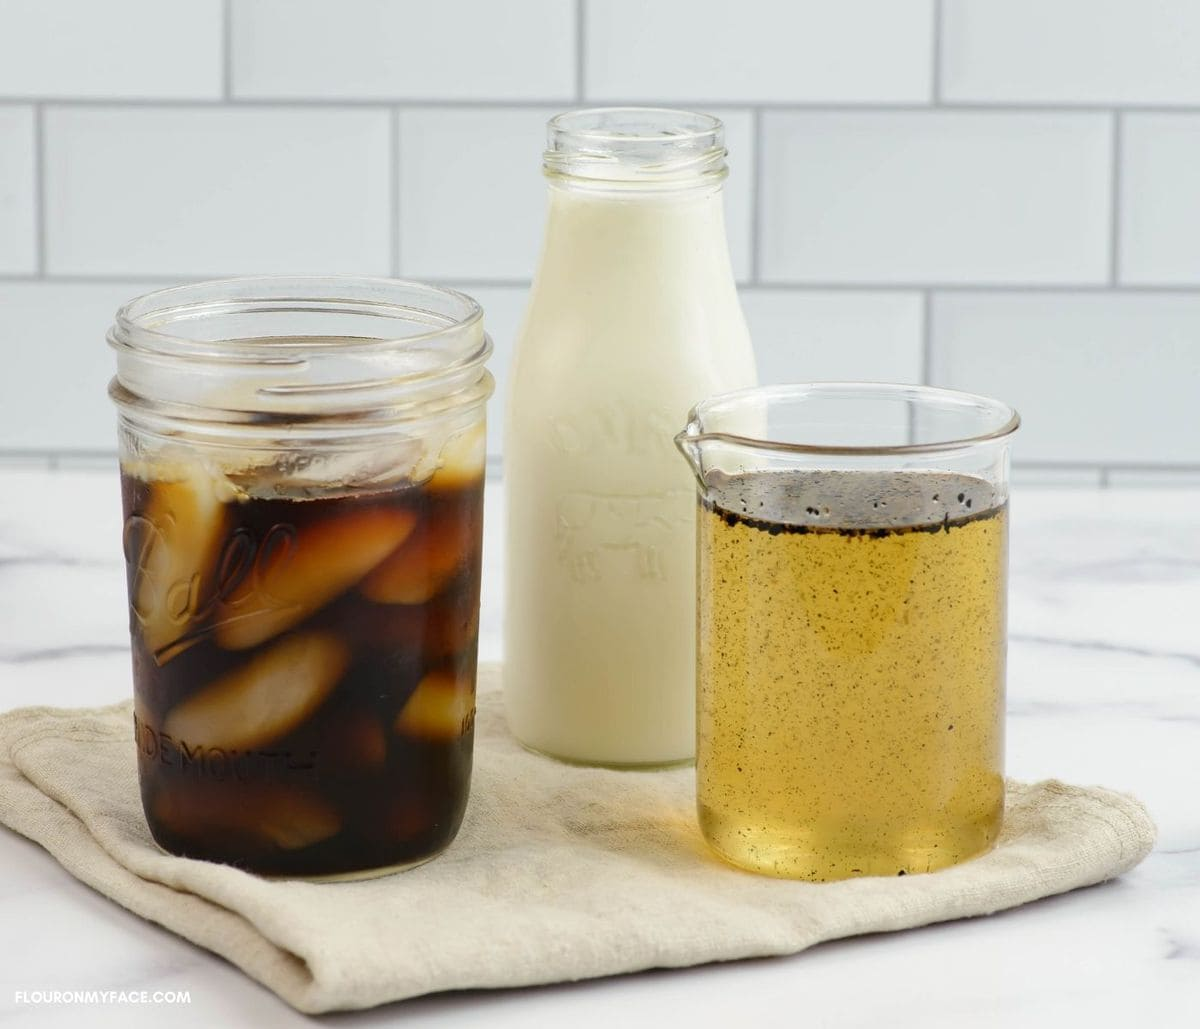 Vanilla syrup, glass of iced coffee and a small bottle filled with milk.